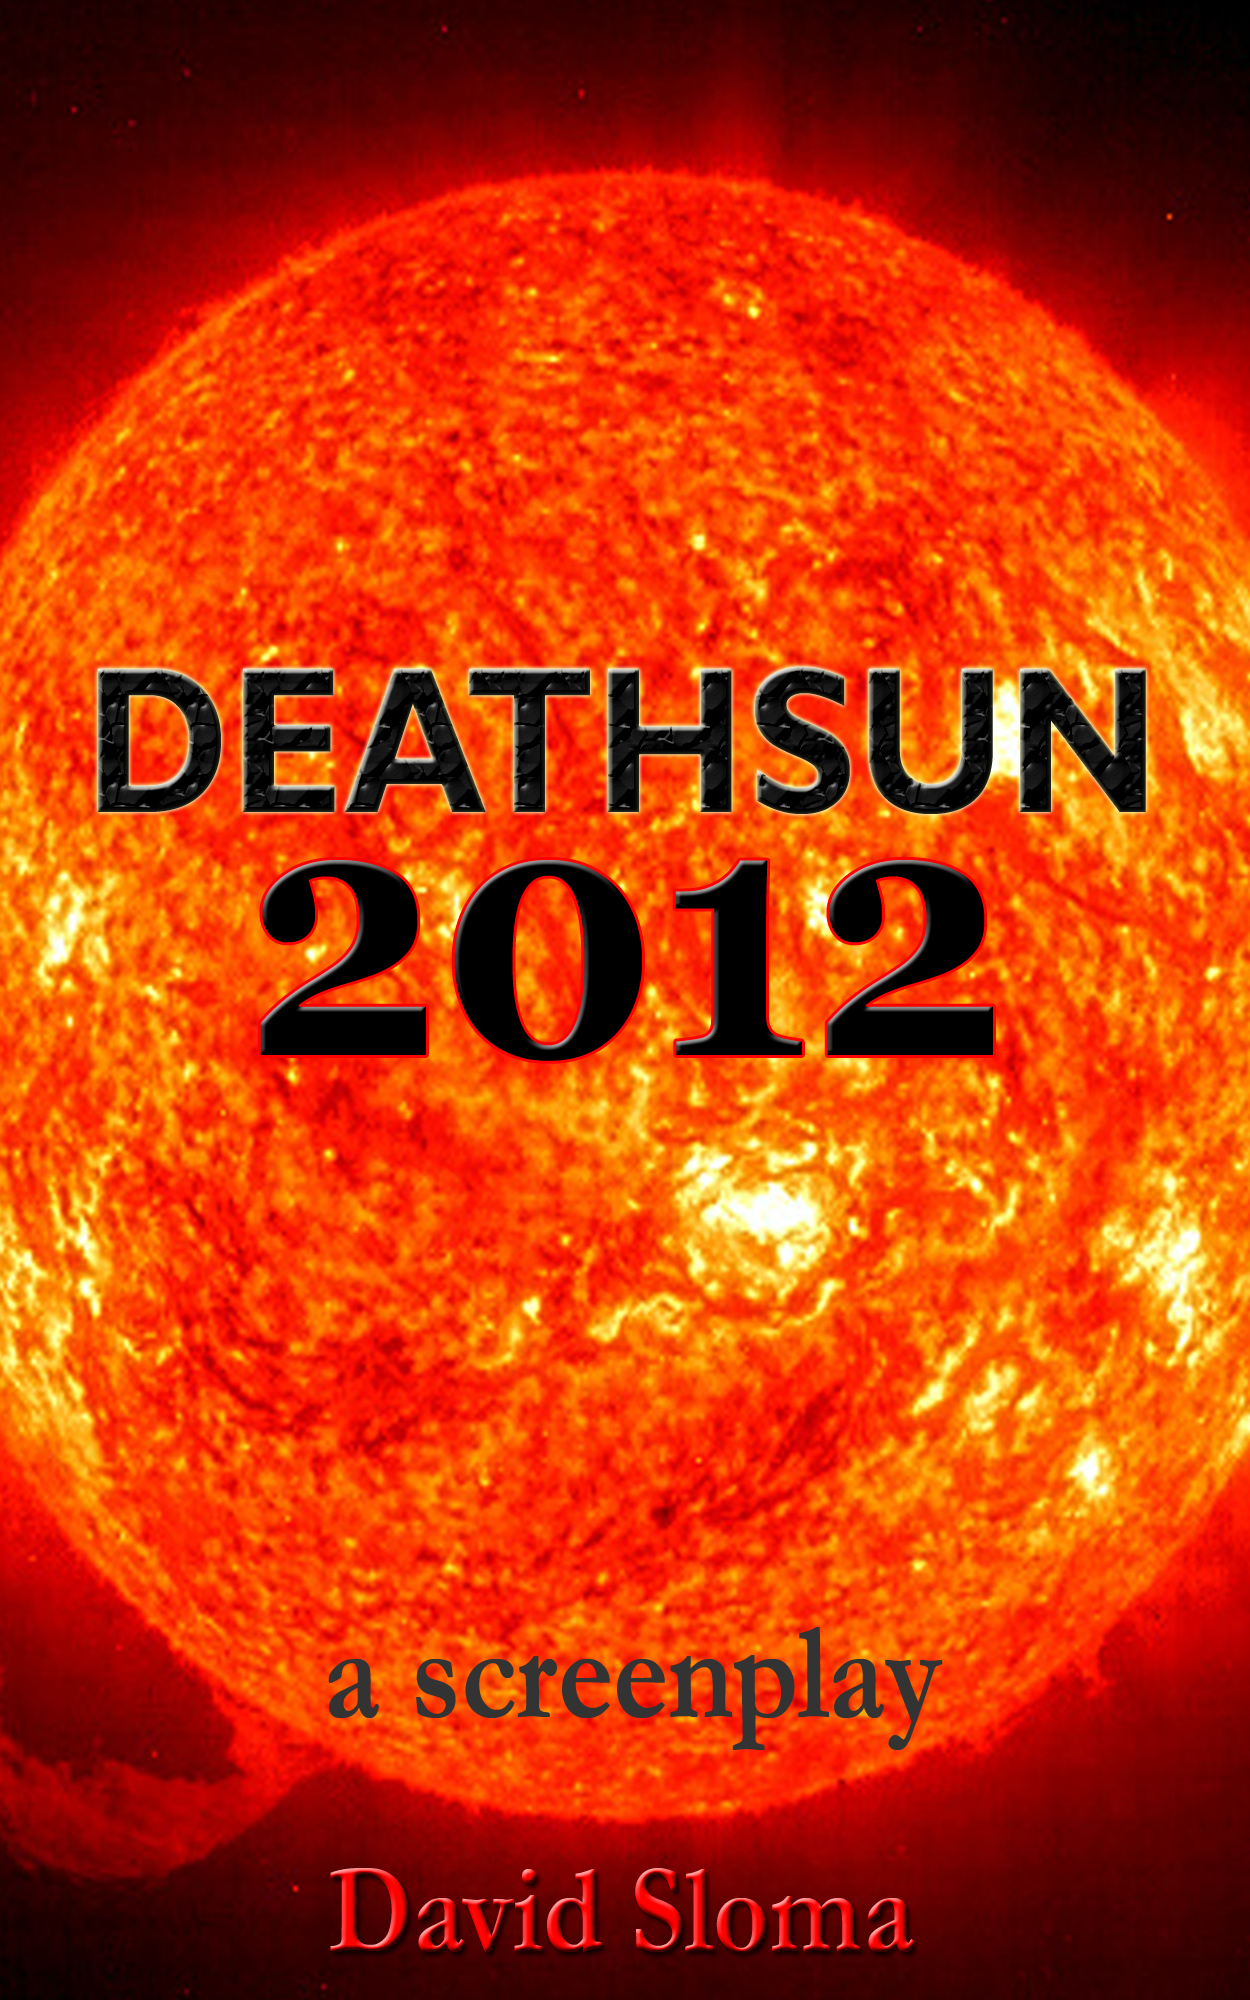 Deathsun 2012 – a screenplay